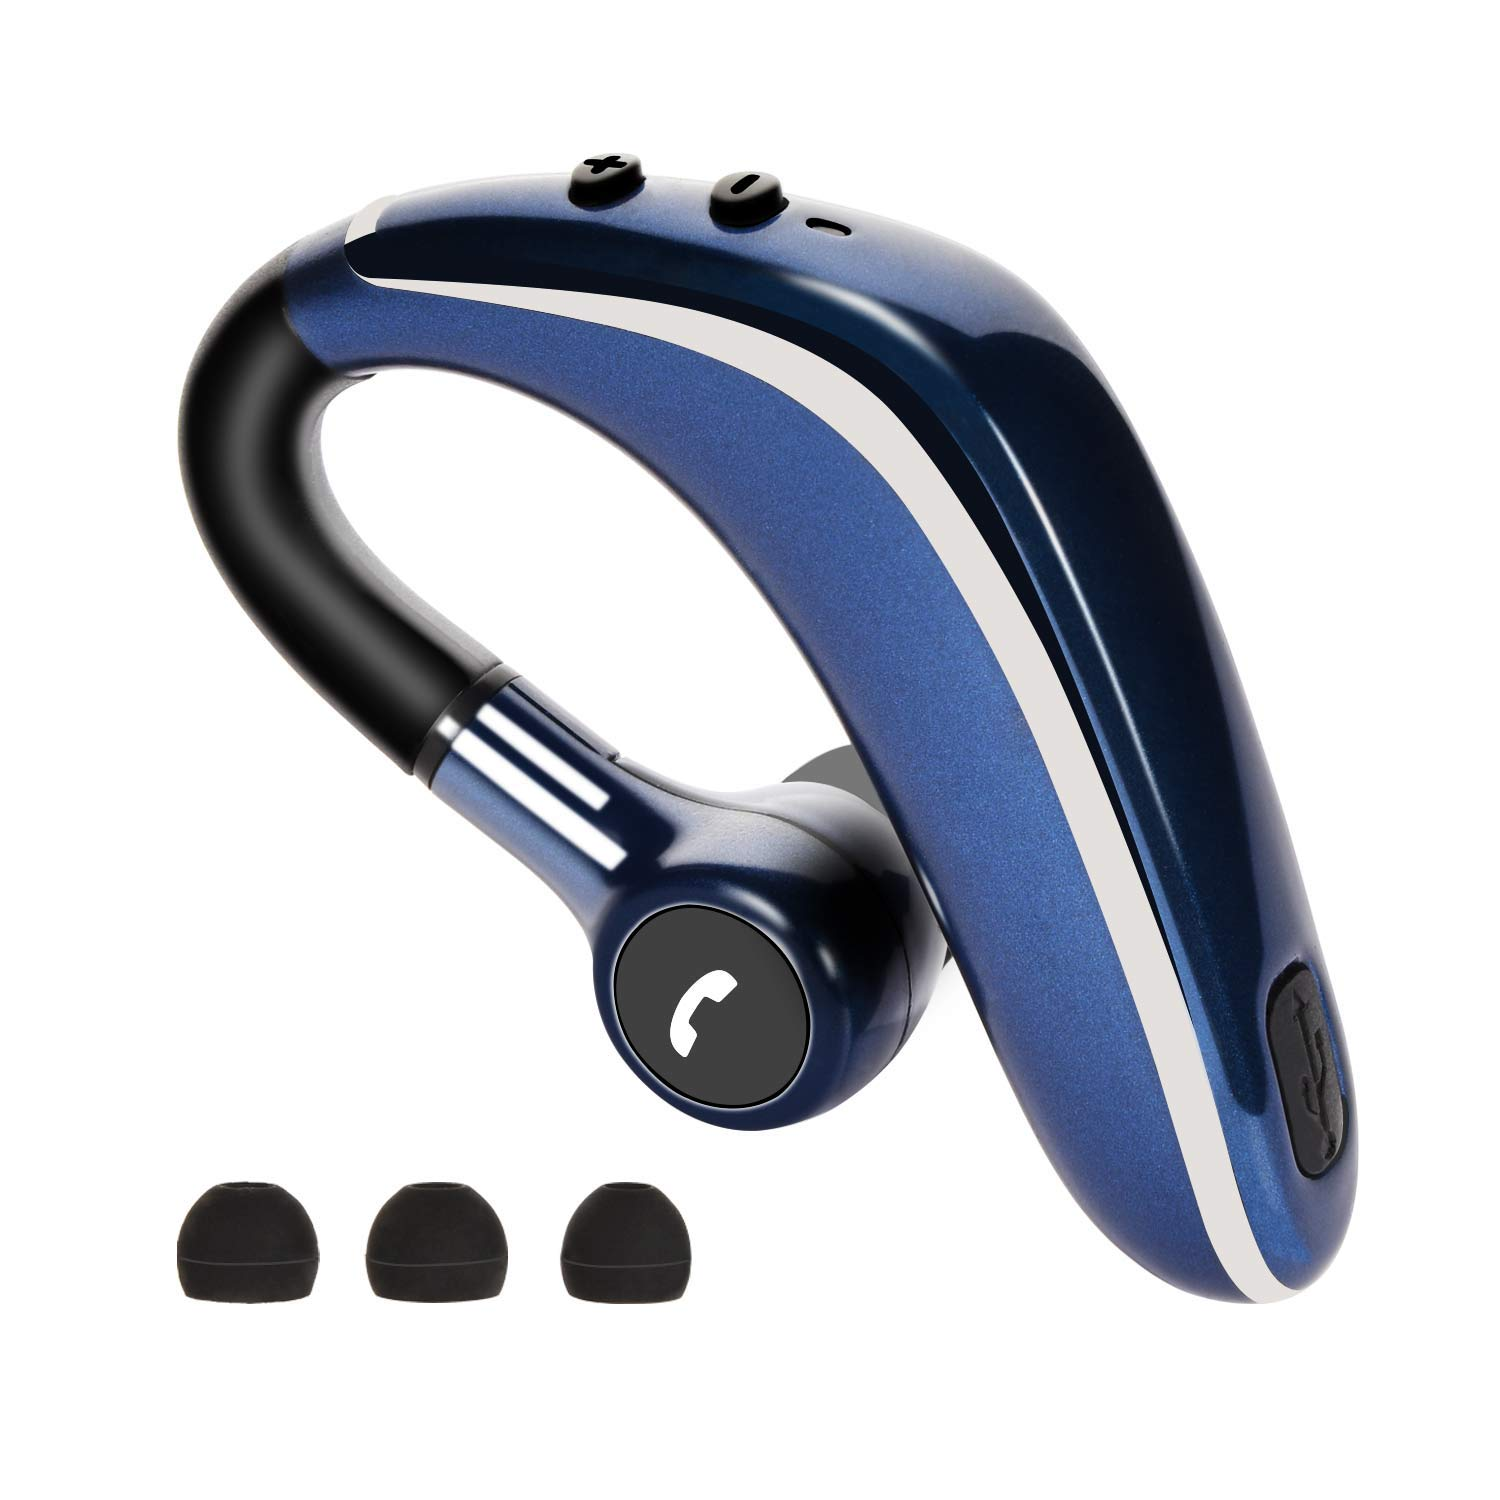 Bluetooth Headset, Ultralight Wireless Bluetooth Earpiece V5.0 Hands Free Noise Cancelling Earphone with Mic for Business/Office/Driving(0.5-0.8 Hours Charging)